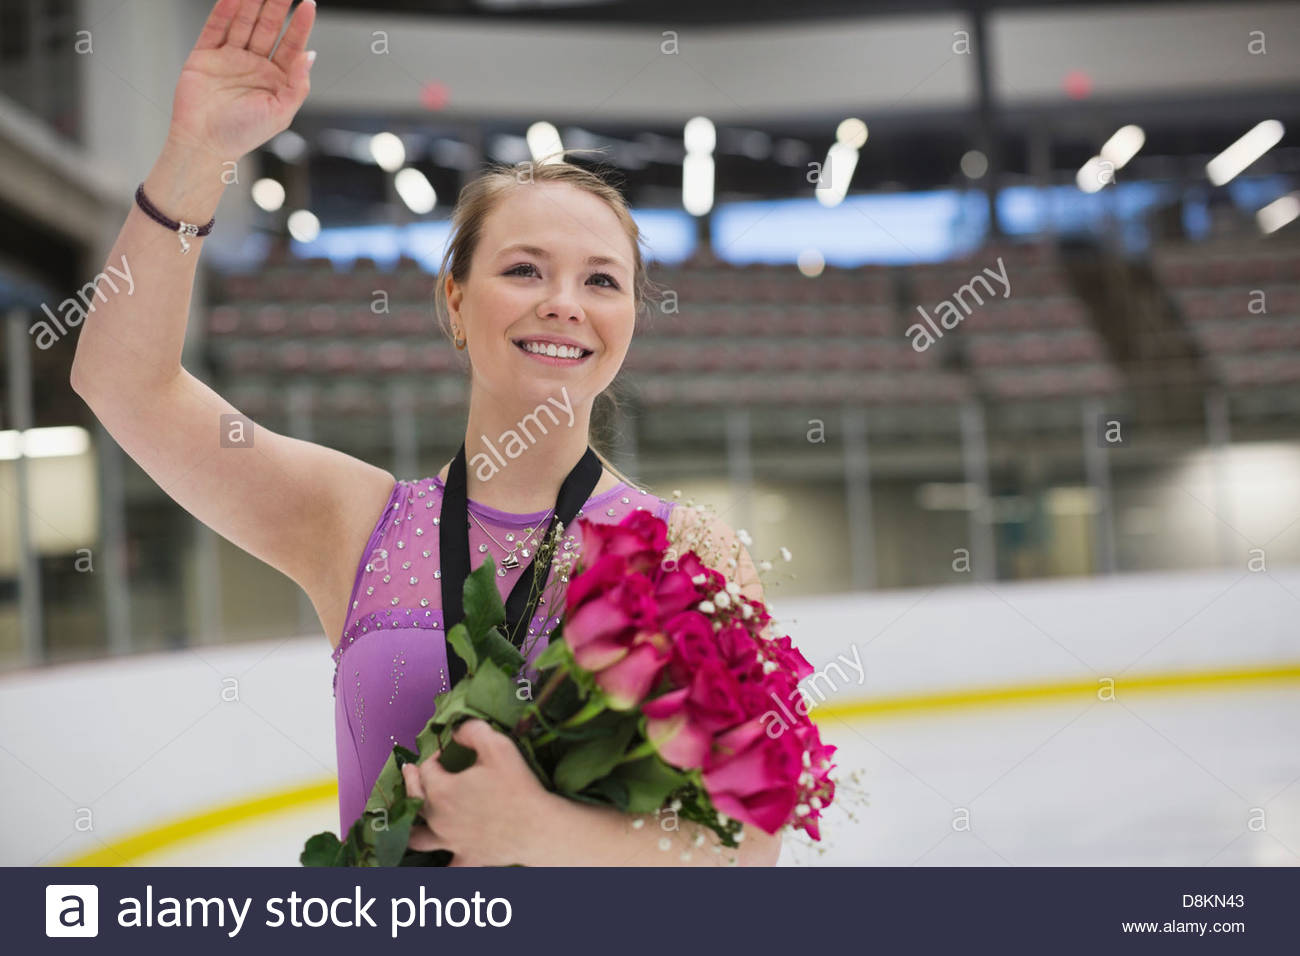 Smiling female figure skater with flowers in skating rink - Stock Image